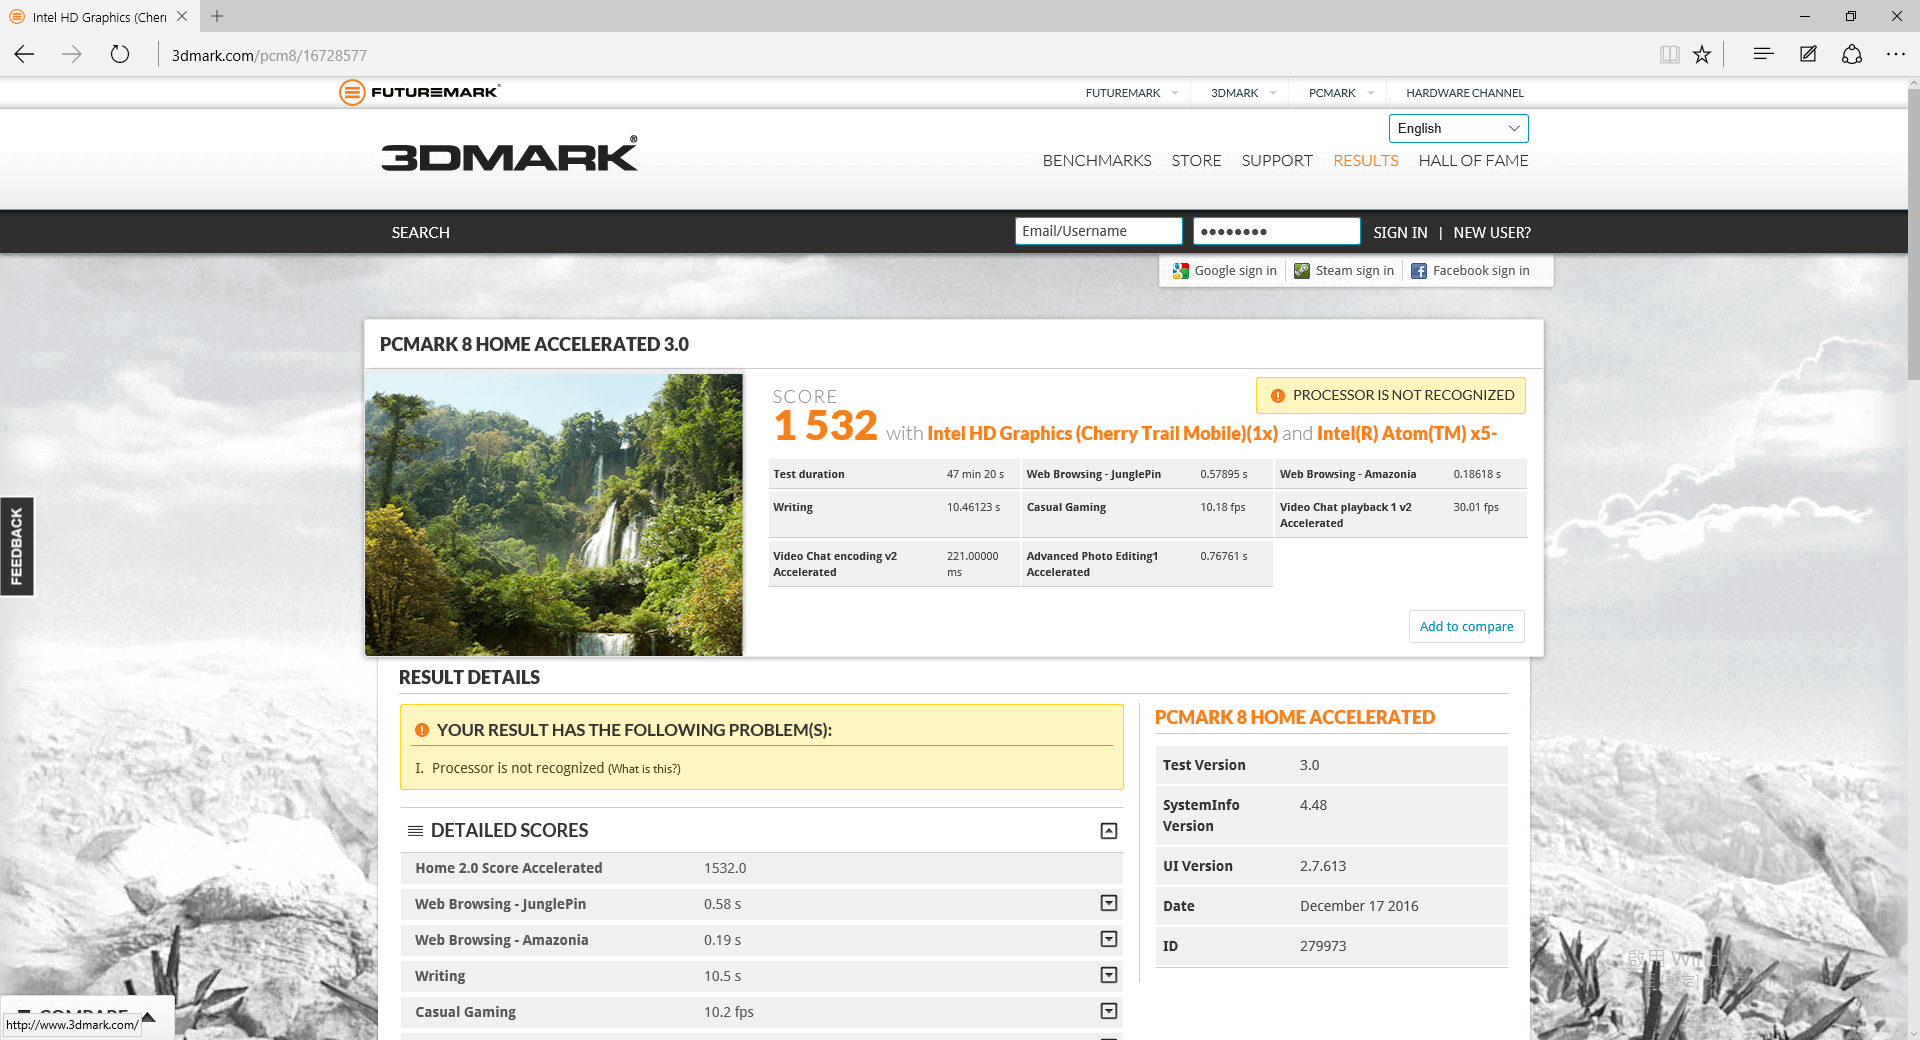 pcmark8-home-accelerated